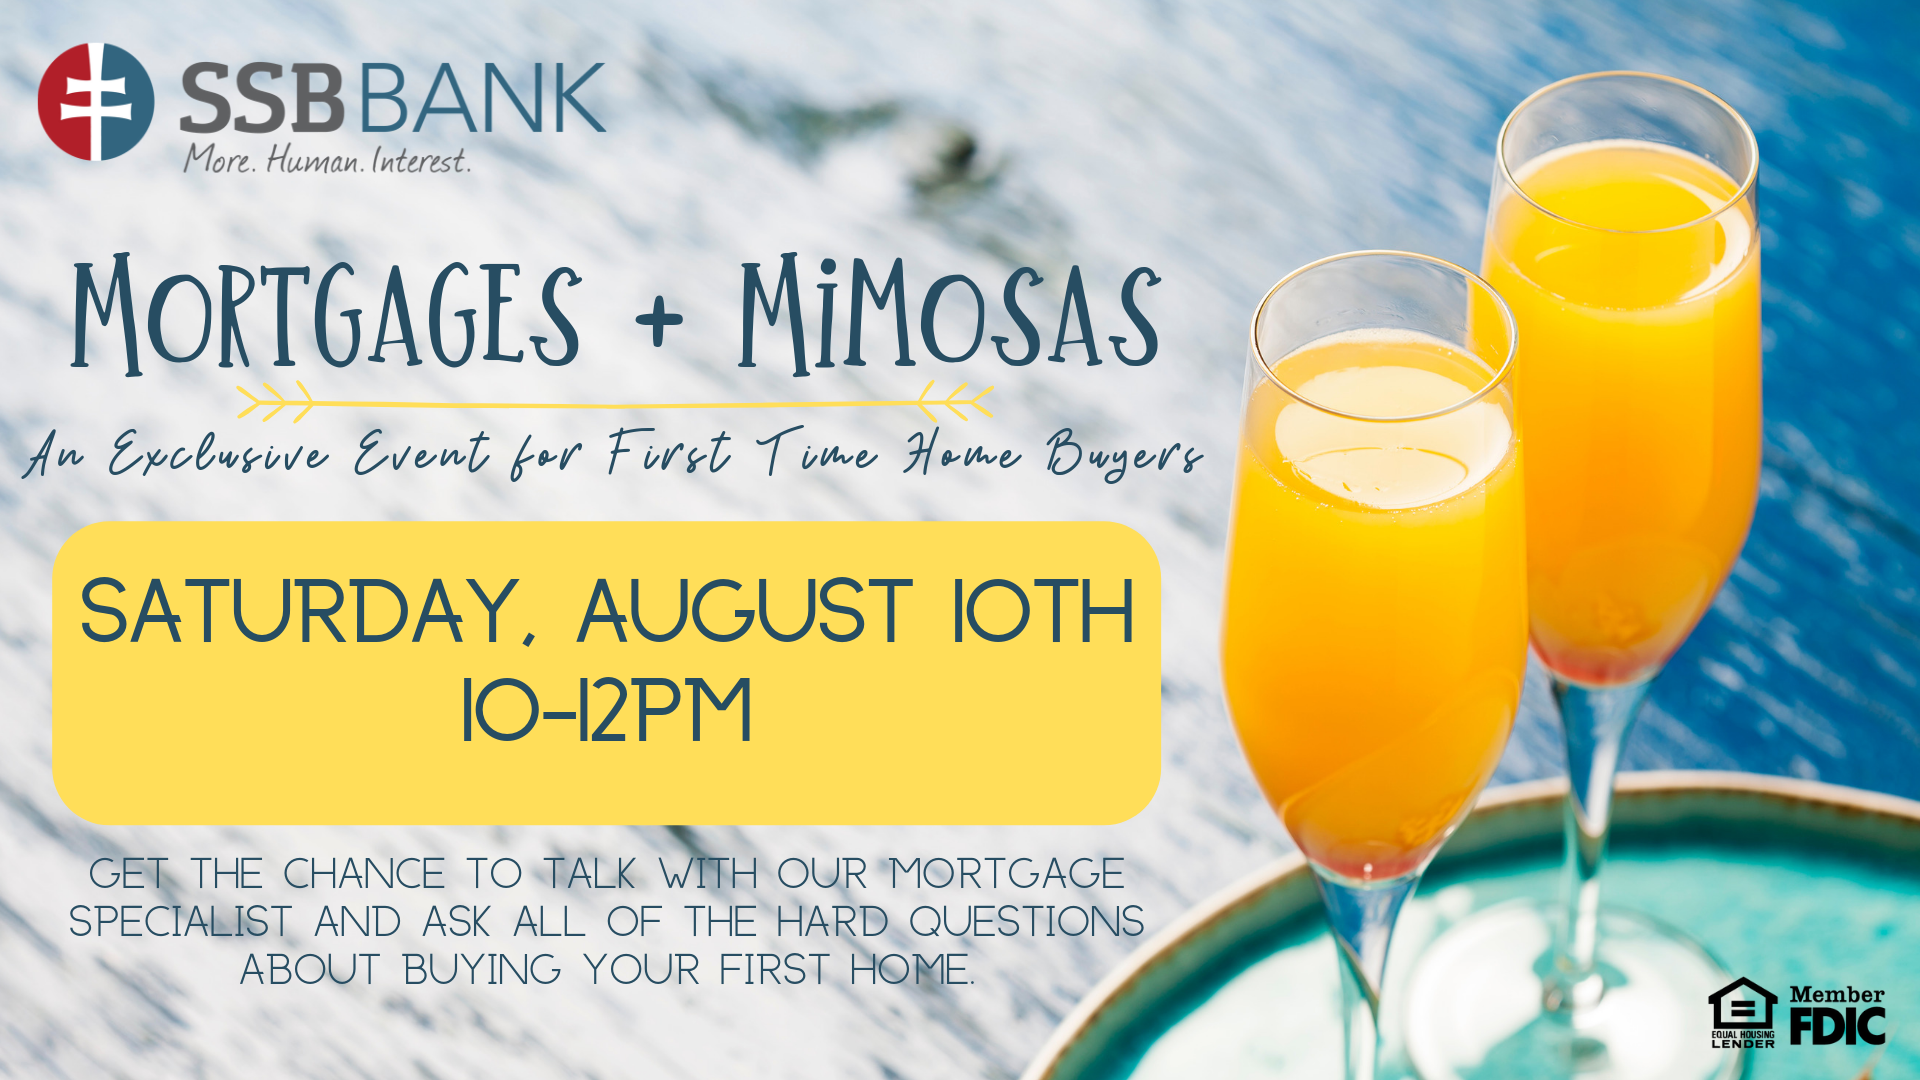 mortgages and mimosas event at ssb bank pittsburgh